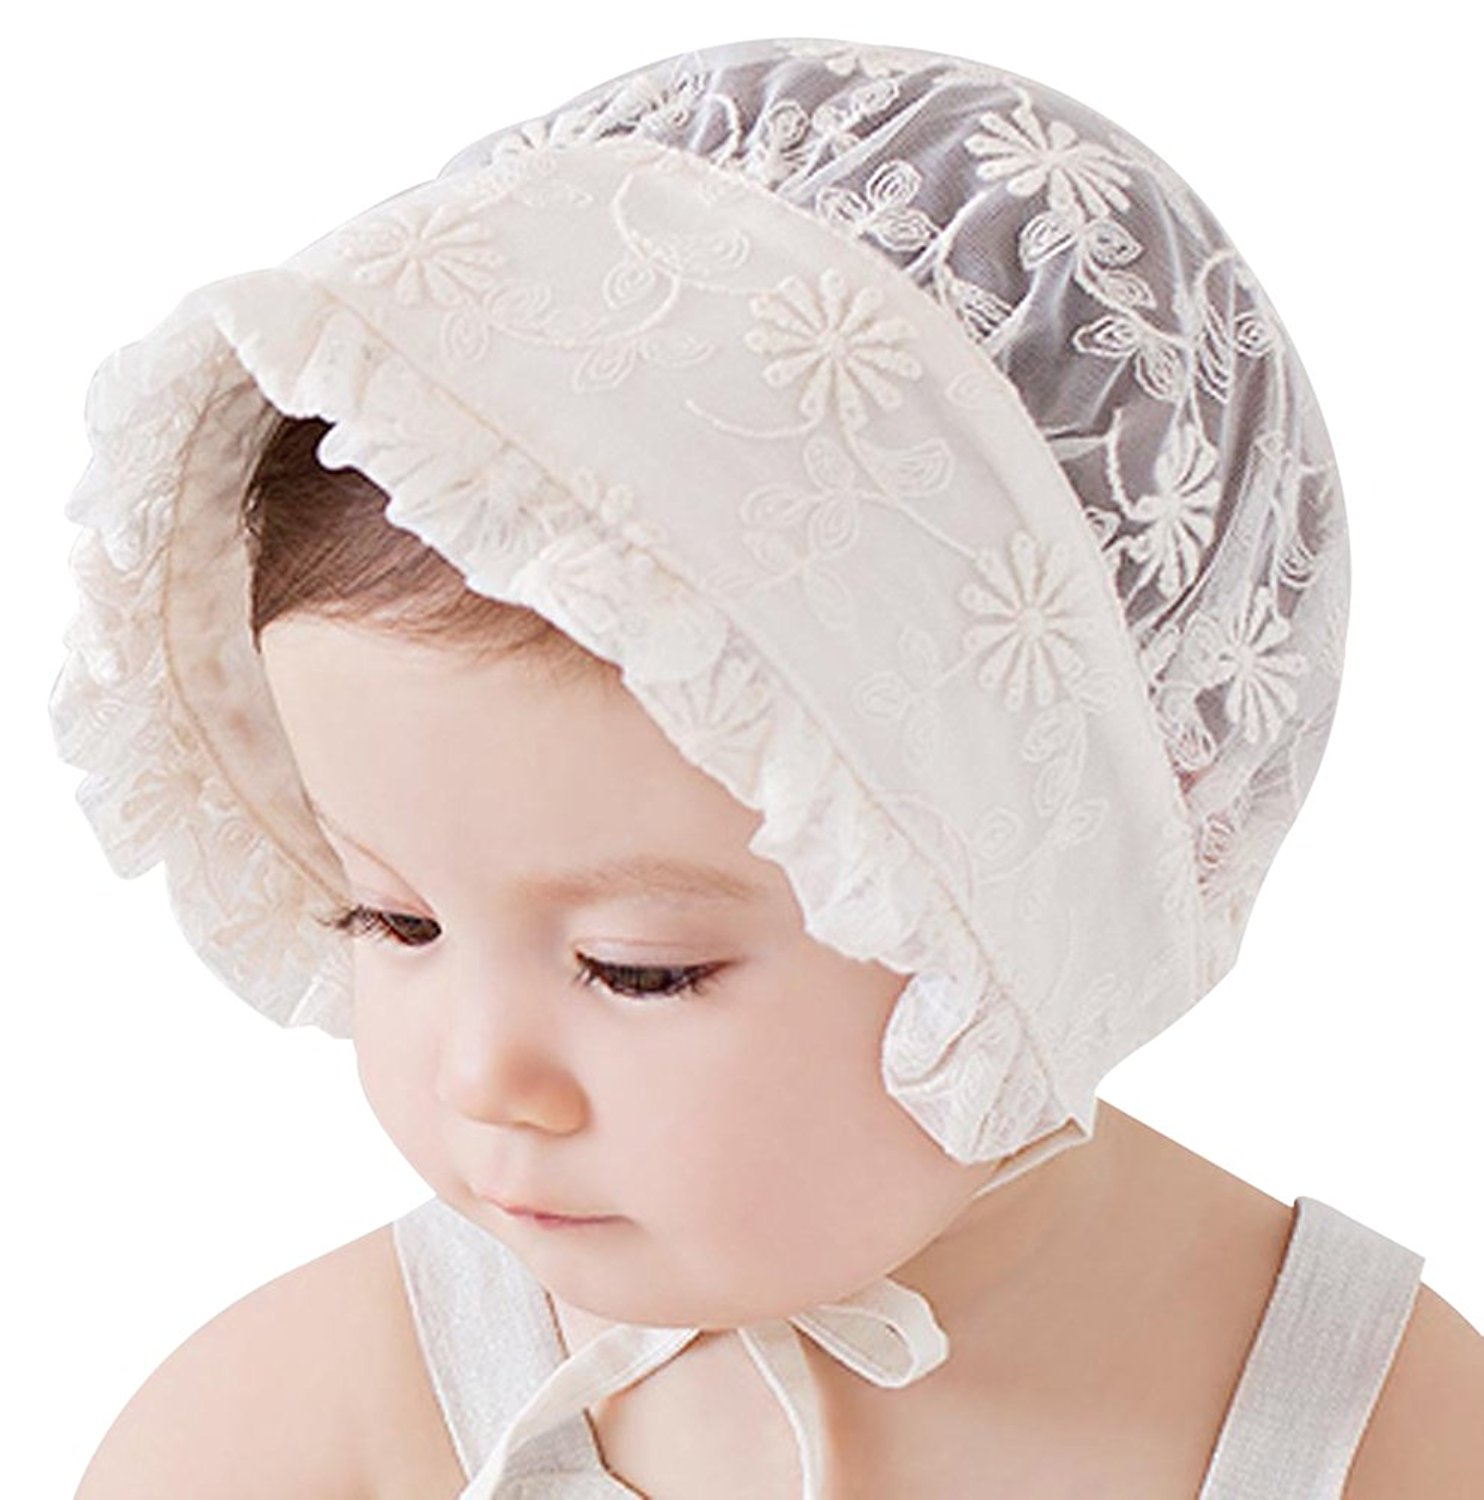 Baby Girl Bonnet Eyelet Lace Breathable Cotton Adjustable Sun Hat